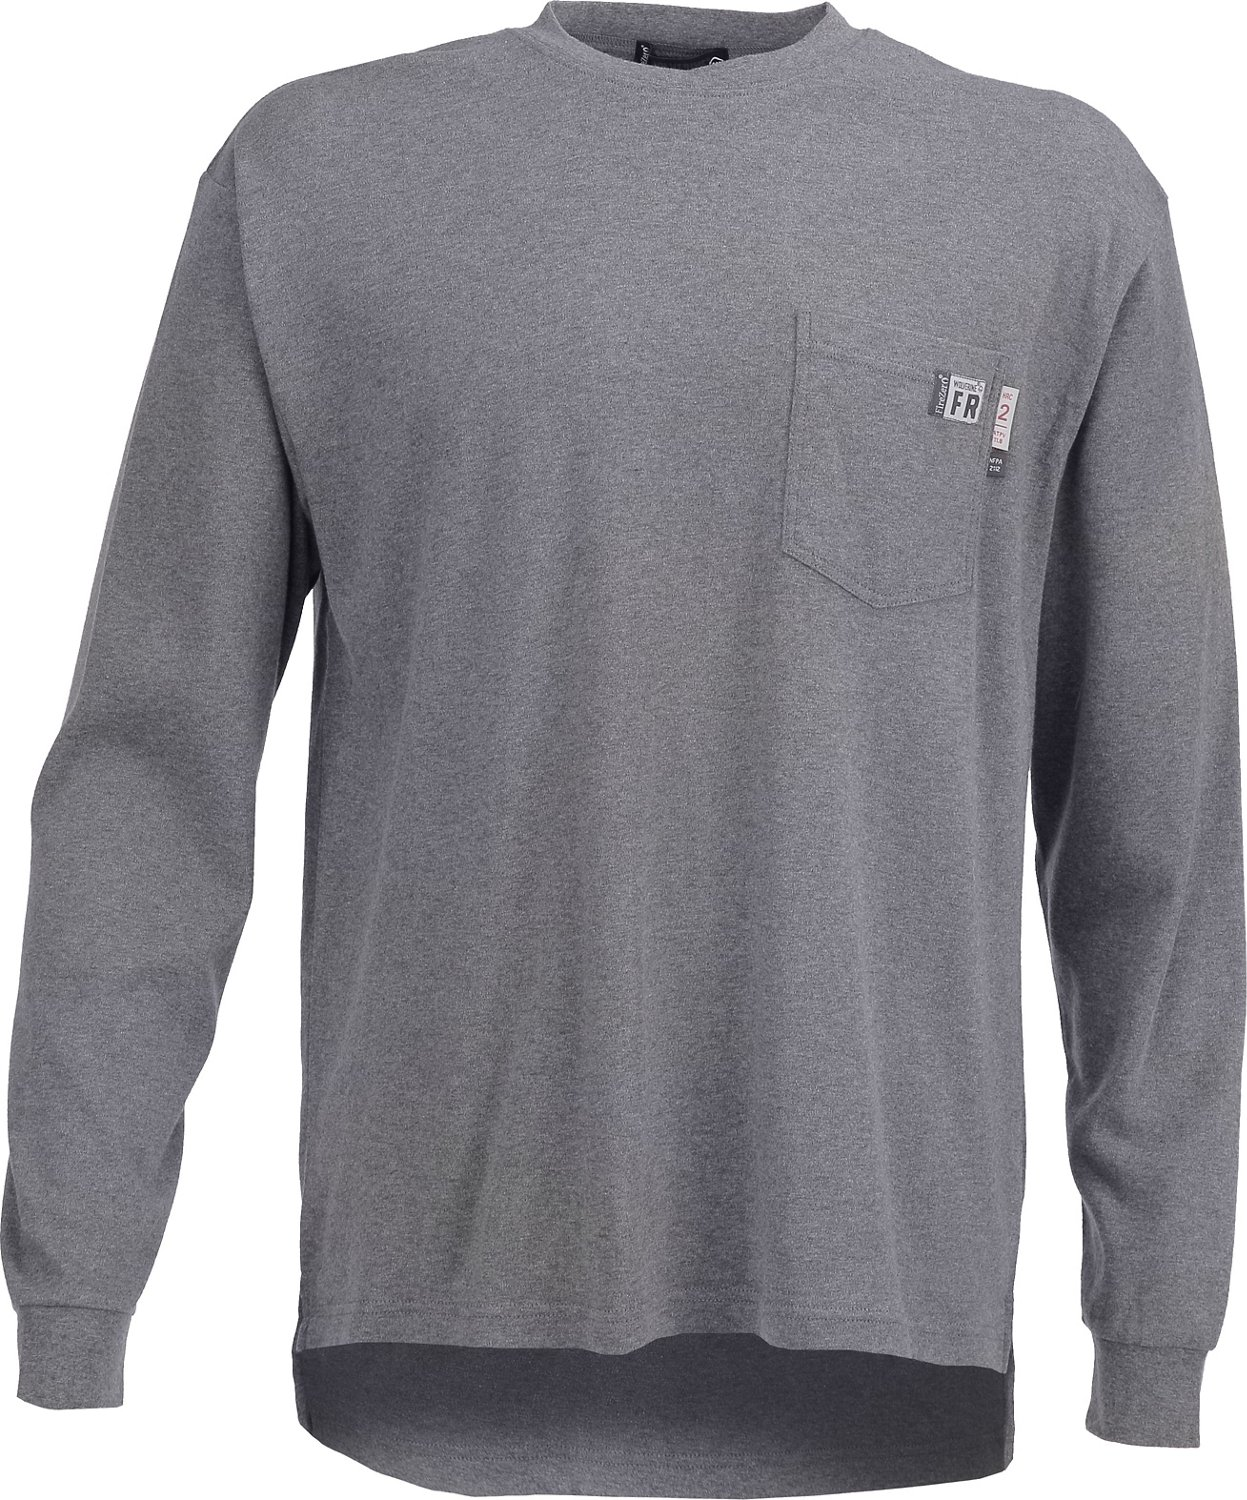 be3d0bbbf64 Wolverine Men s Flame Resistant Long Sleeve T-shirt